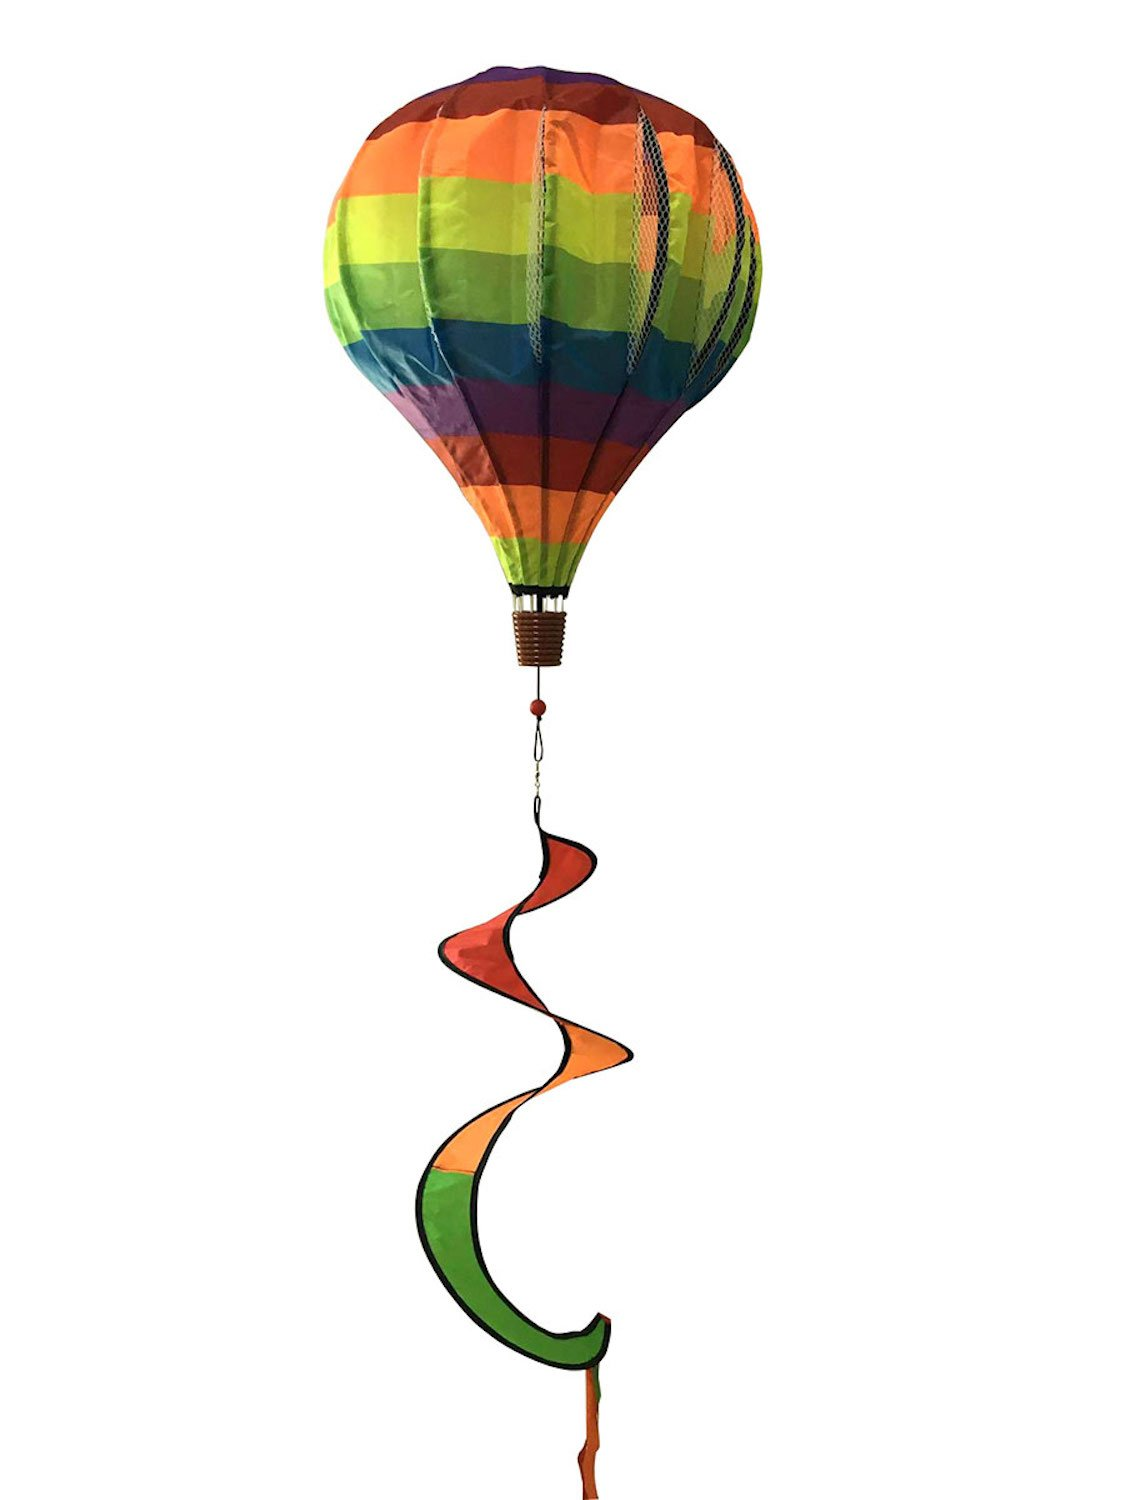 "Rainbow Deluxe Hot Air Balloon Wind Twister Everyday 54""L Briarwood Lane"